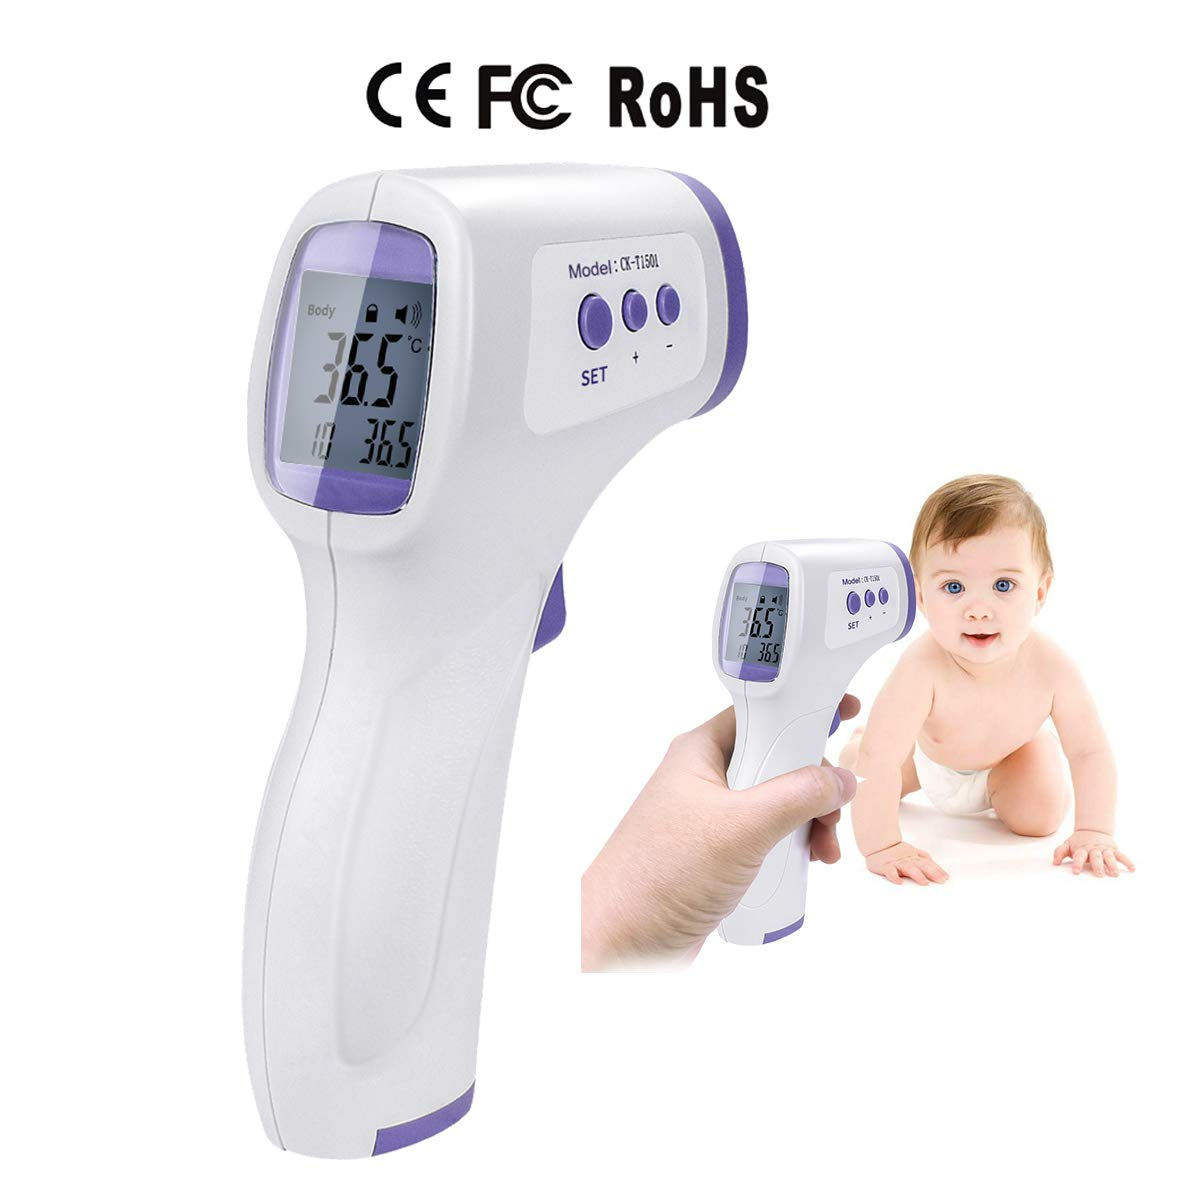 Infrared Forehead Thermometer, Digital Infrared Forehead Thermometer, Non-Contact Digital Thermometer with LCD Display Accurate Infrared Thermometer for Baby, Infants, Adults, Surface of Objects